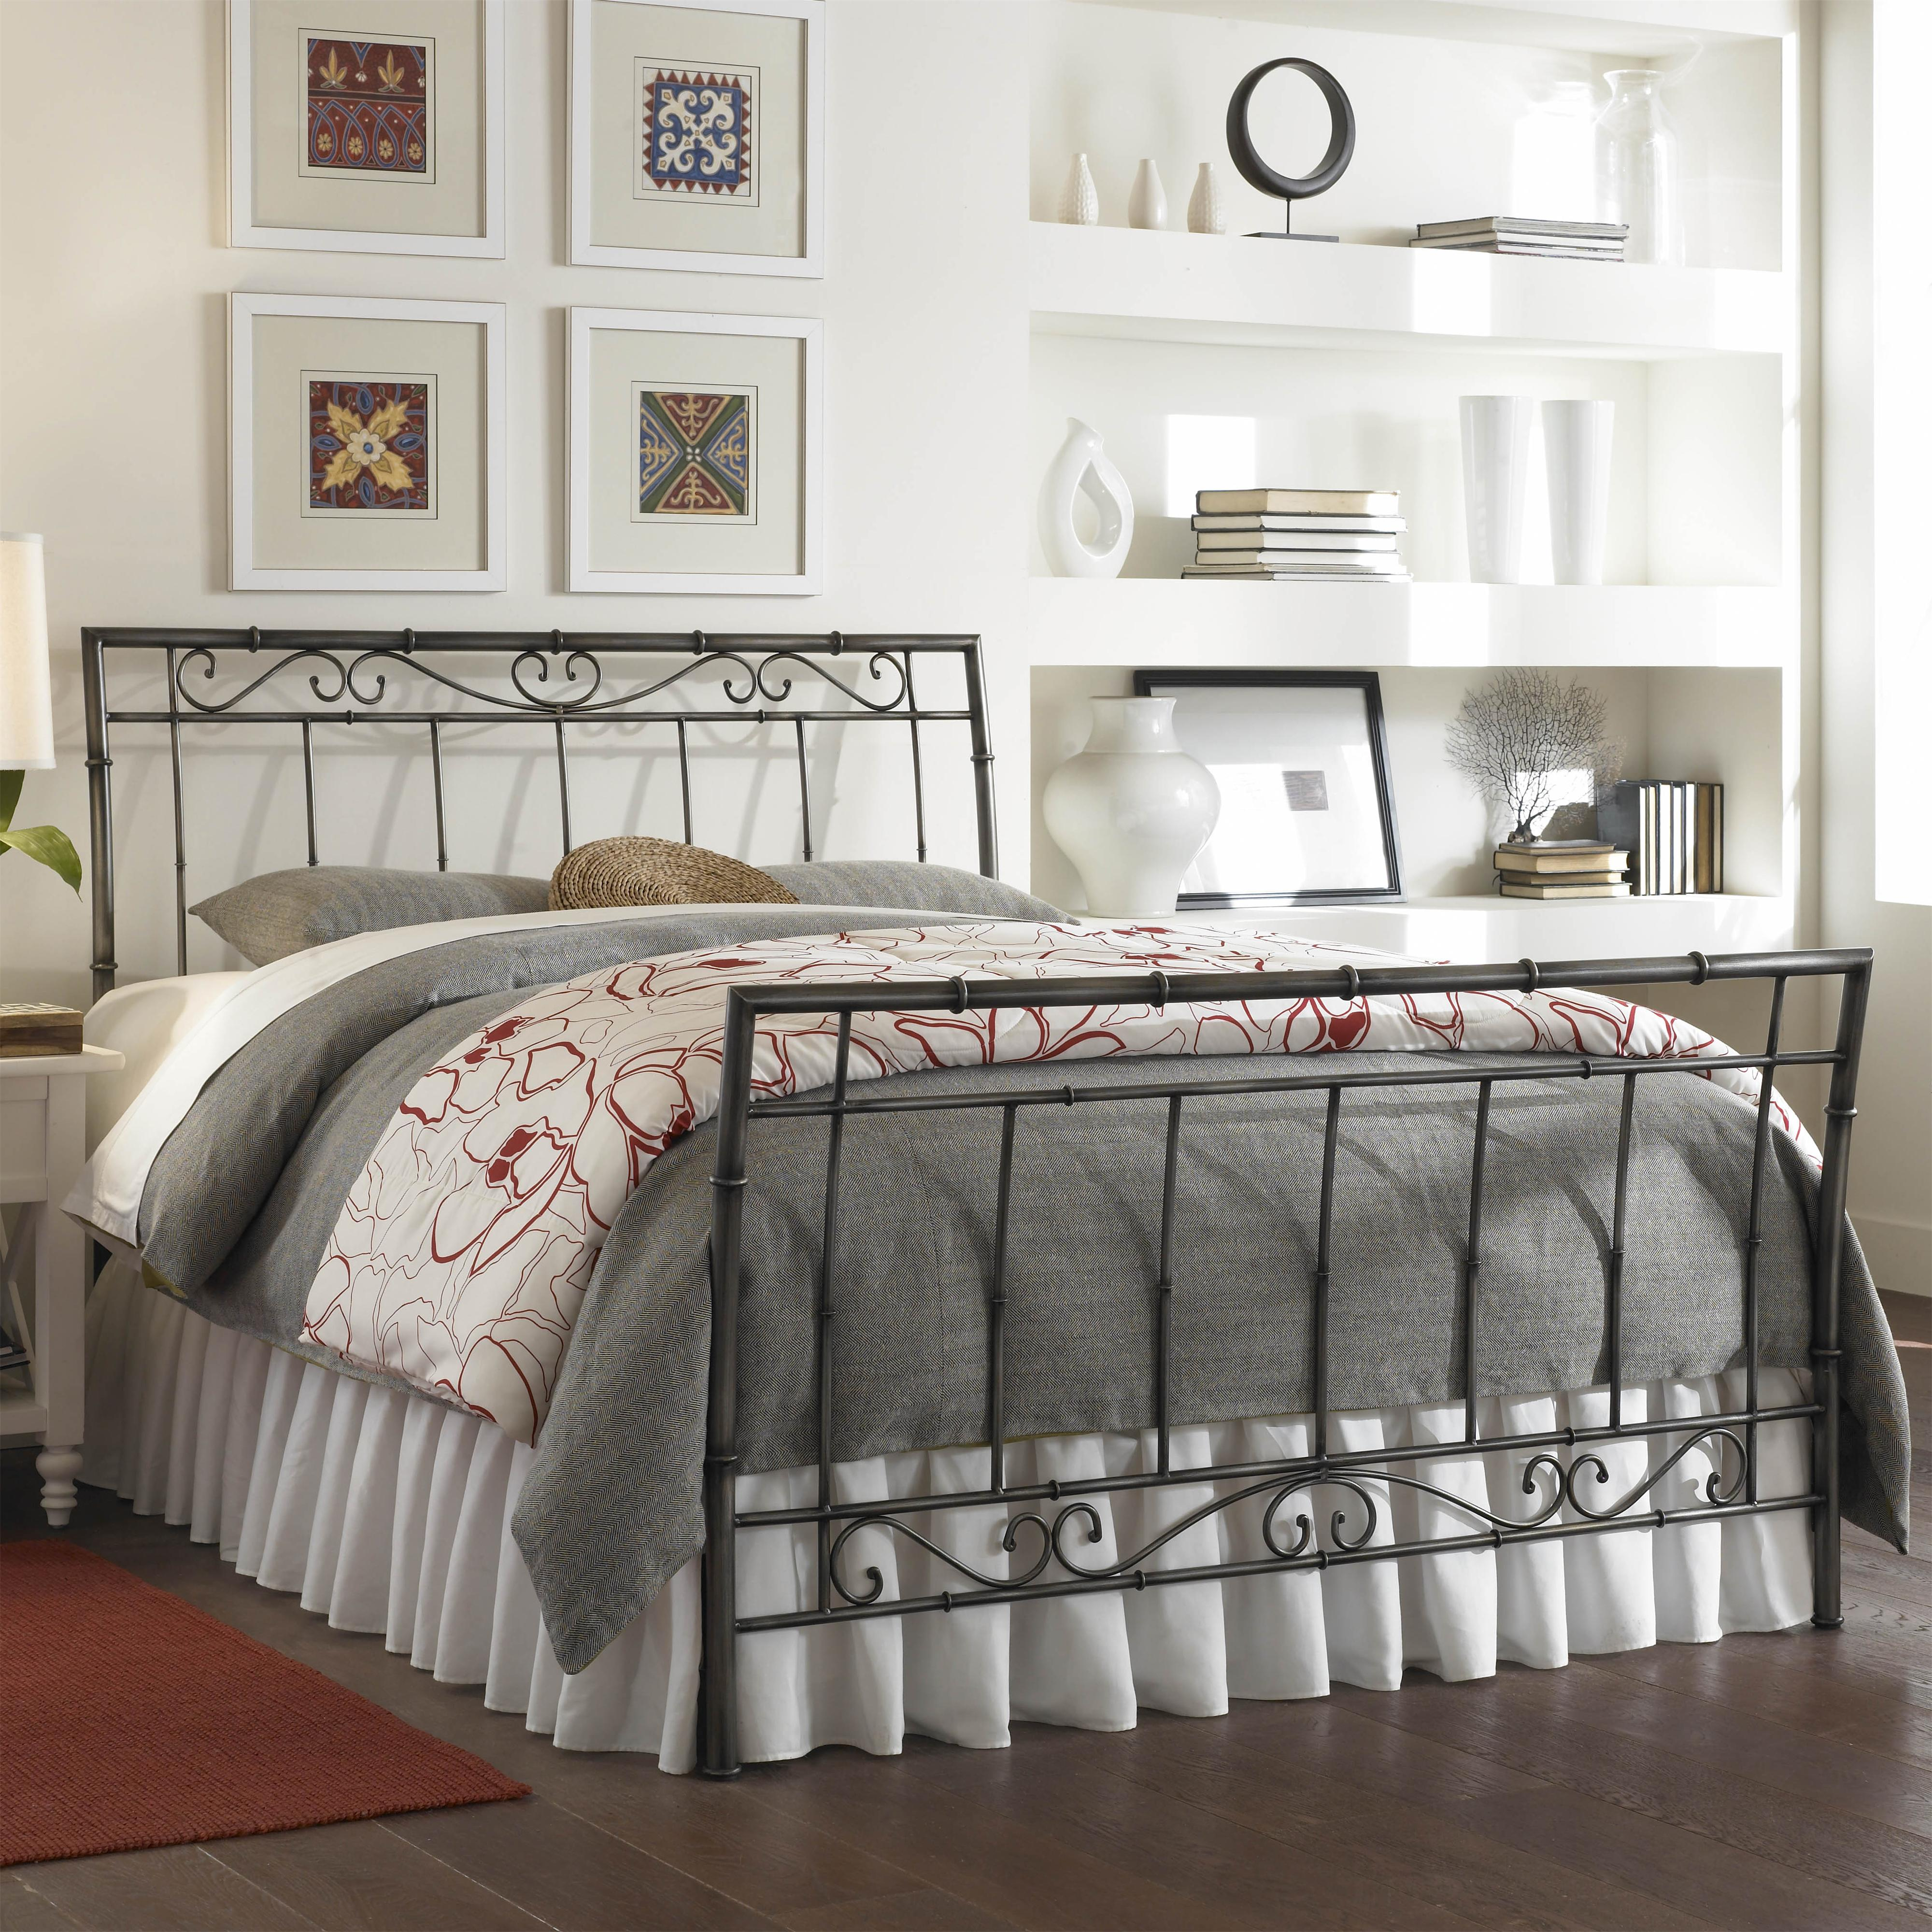 Fashion Bed Group Metal Beds Queen Ellington Bed W/ Frame   AHFA    Headboard U0026 Footboard Dealer Locator